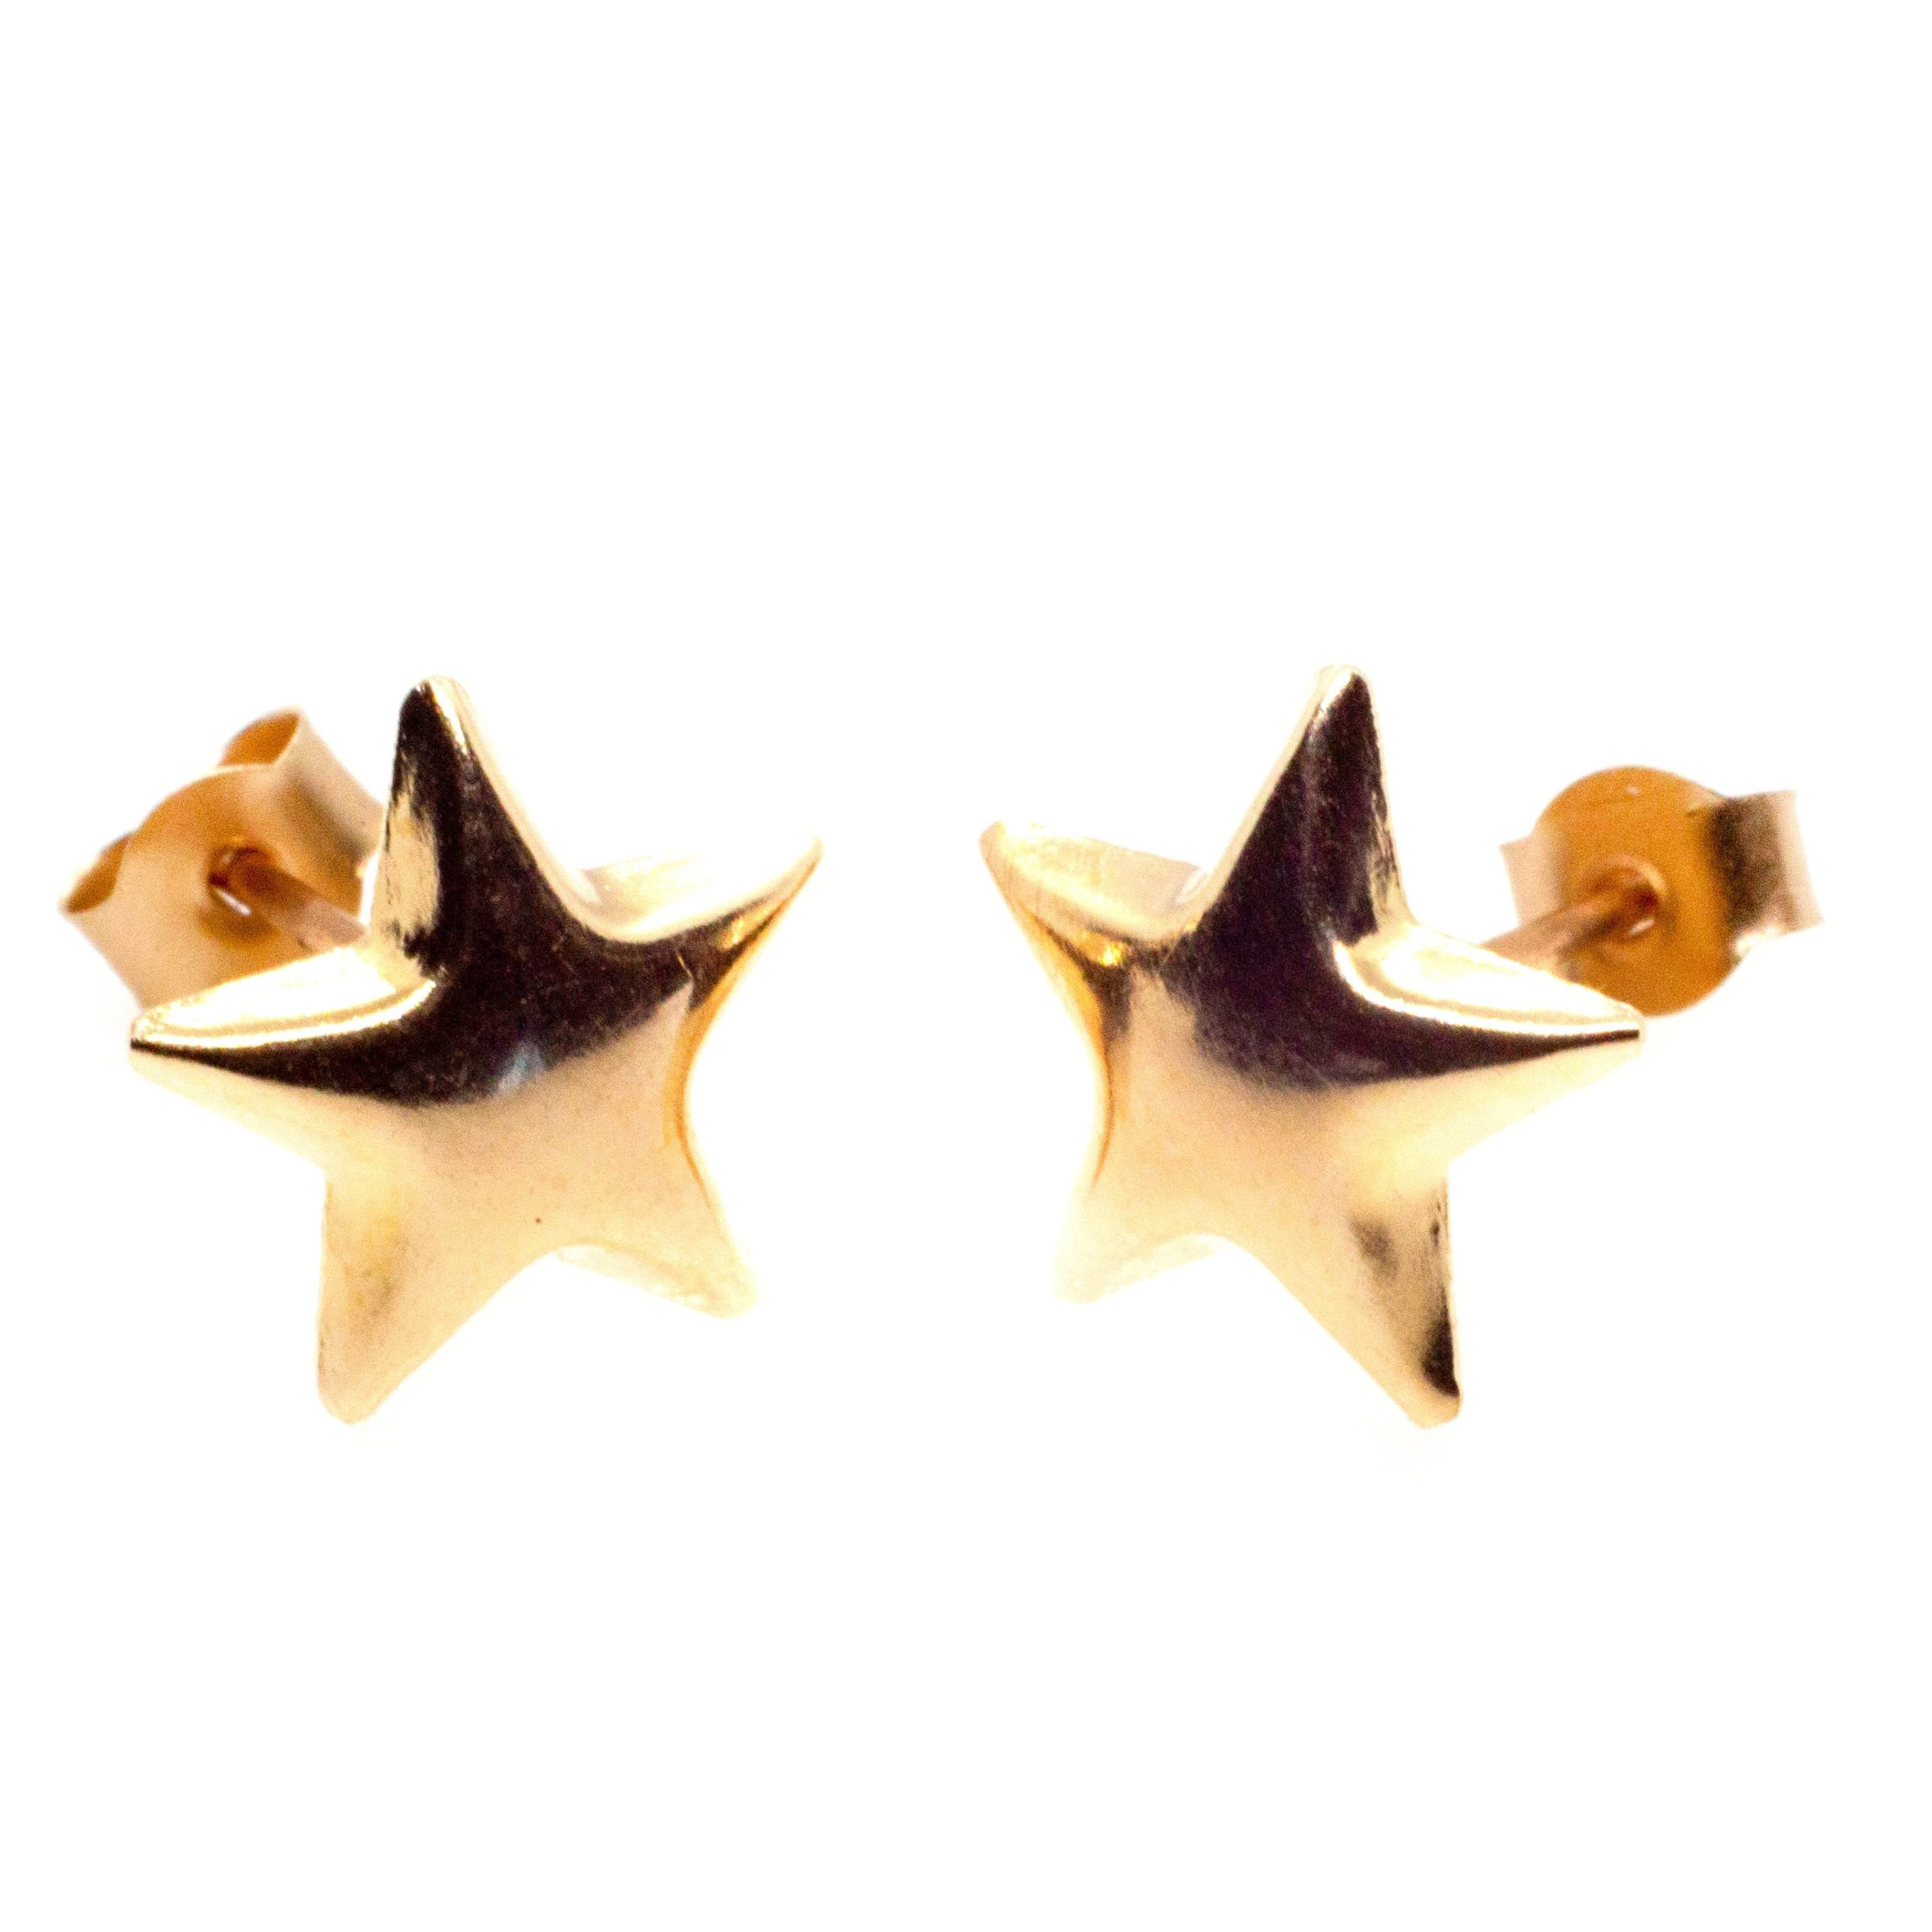 9ct gold star earrings